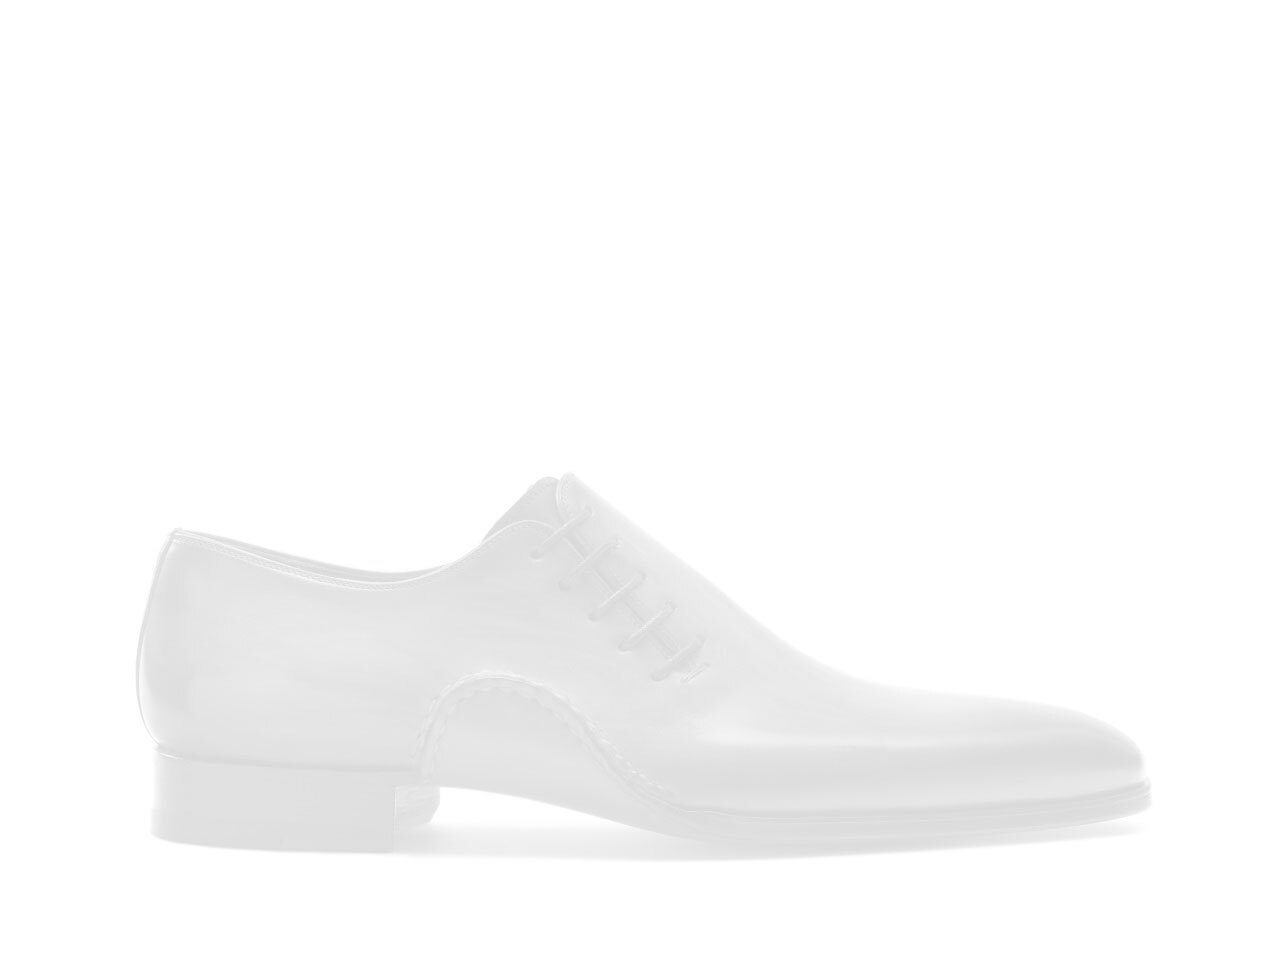 Grey hand painted calfskin sneakers shoes for men - Magnanni